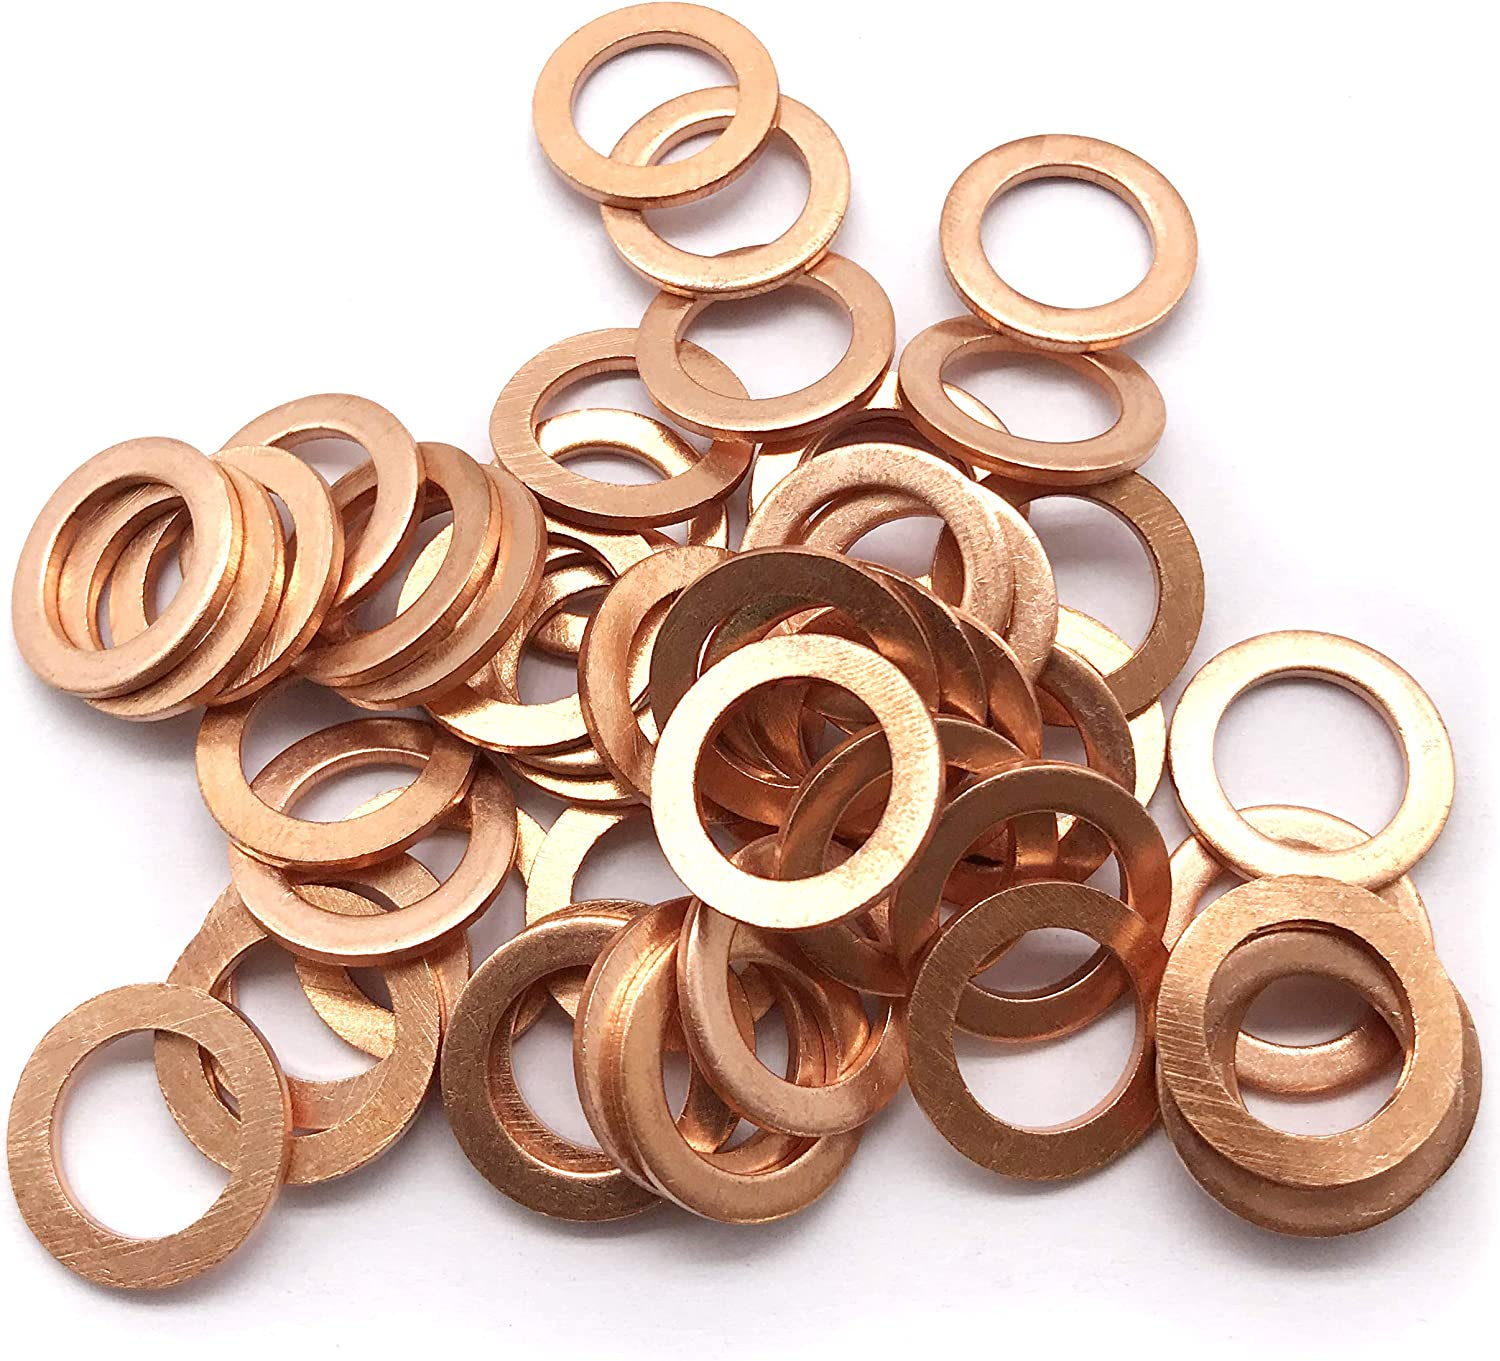 M12 Flat Washer Copper Sealing Ring, 12mm ID 18mm OD 1.5mm Thickness Metric Sealing Gasket, 50 Pieces